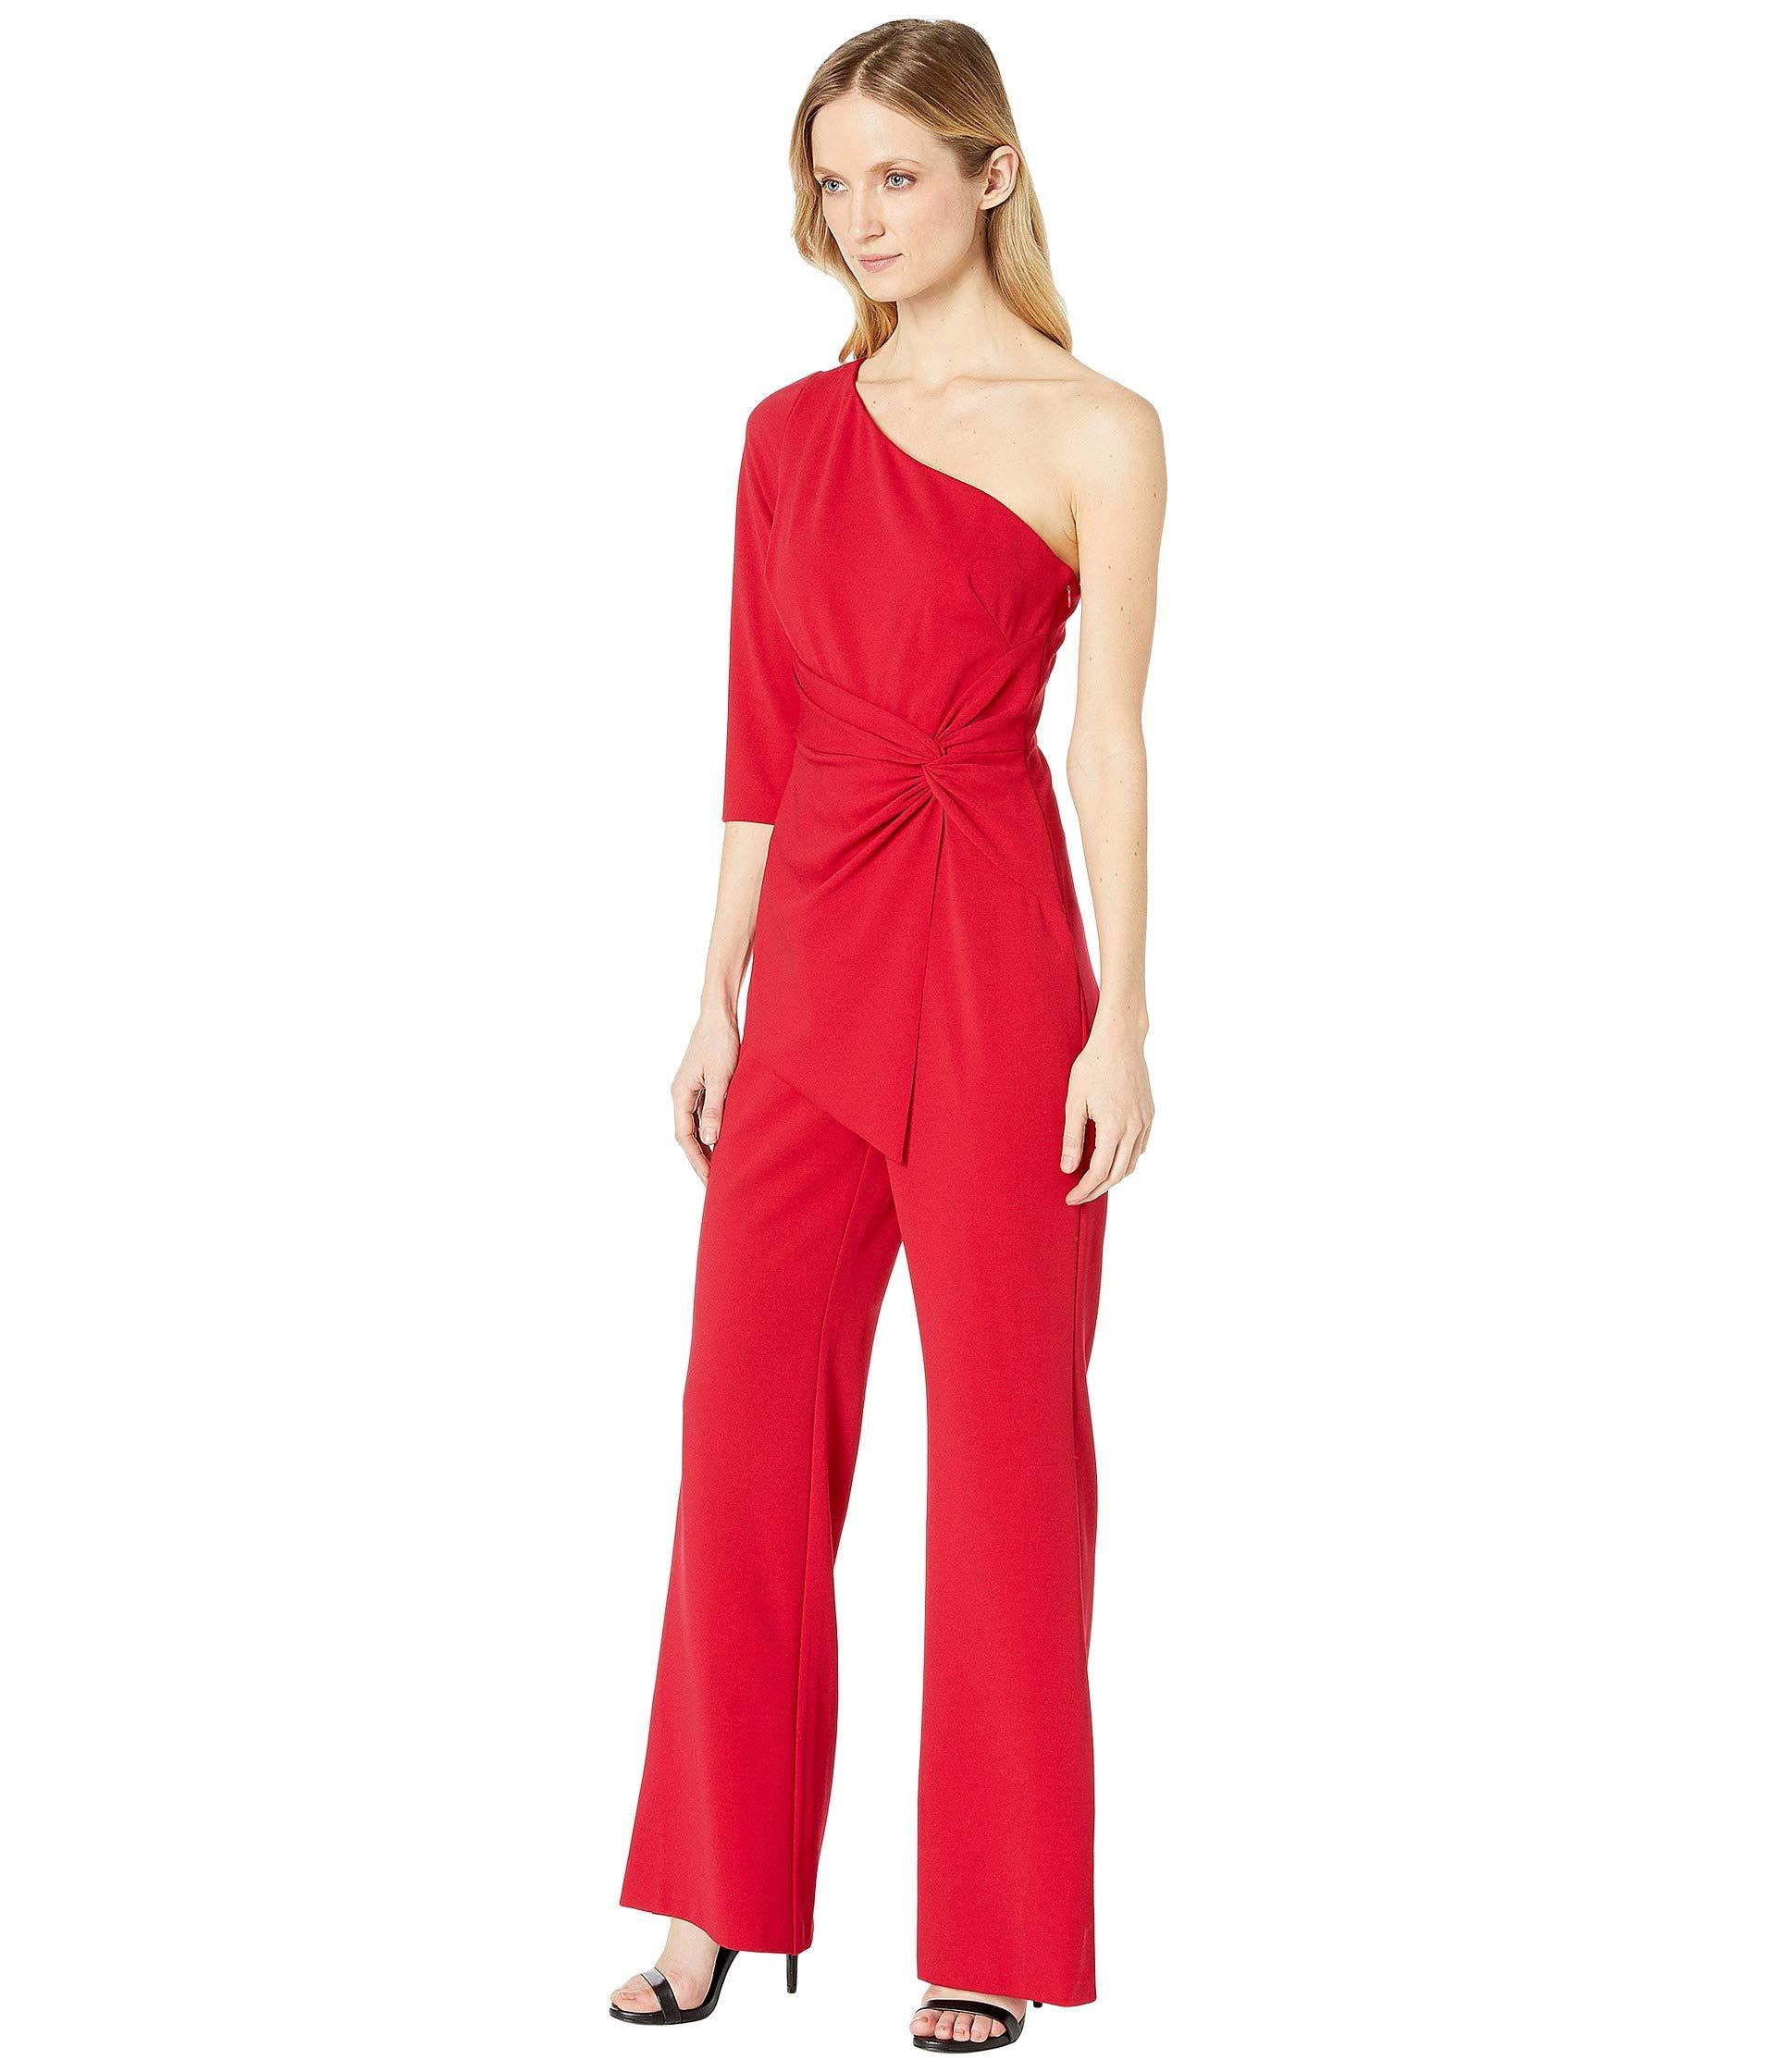 a7ec91a565fc Lyst - Adrianna Papell One Shoulder Jumpsuit (dark Cherry) Women s Jumpsuit    Rompers One Piece in Red